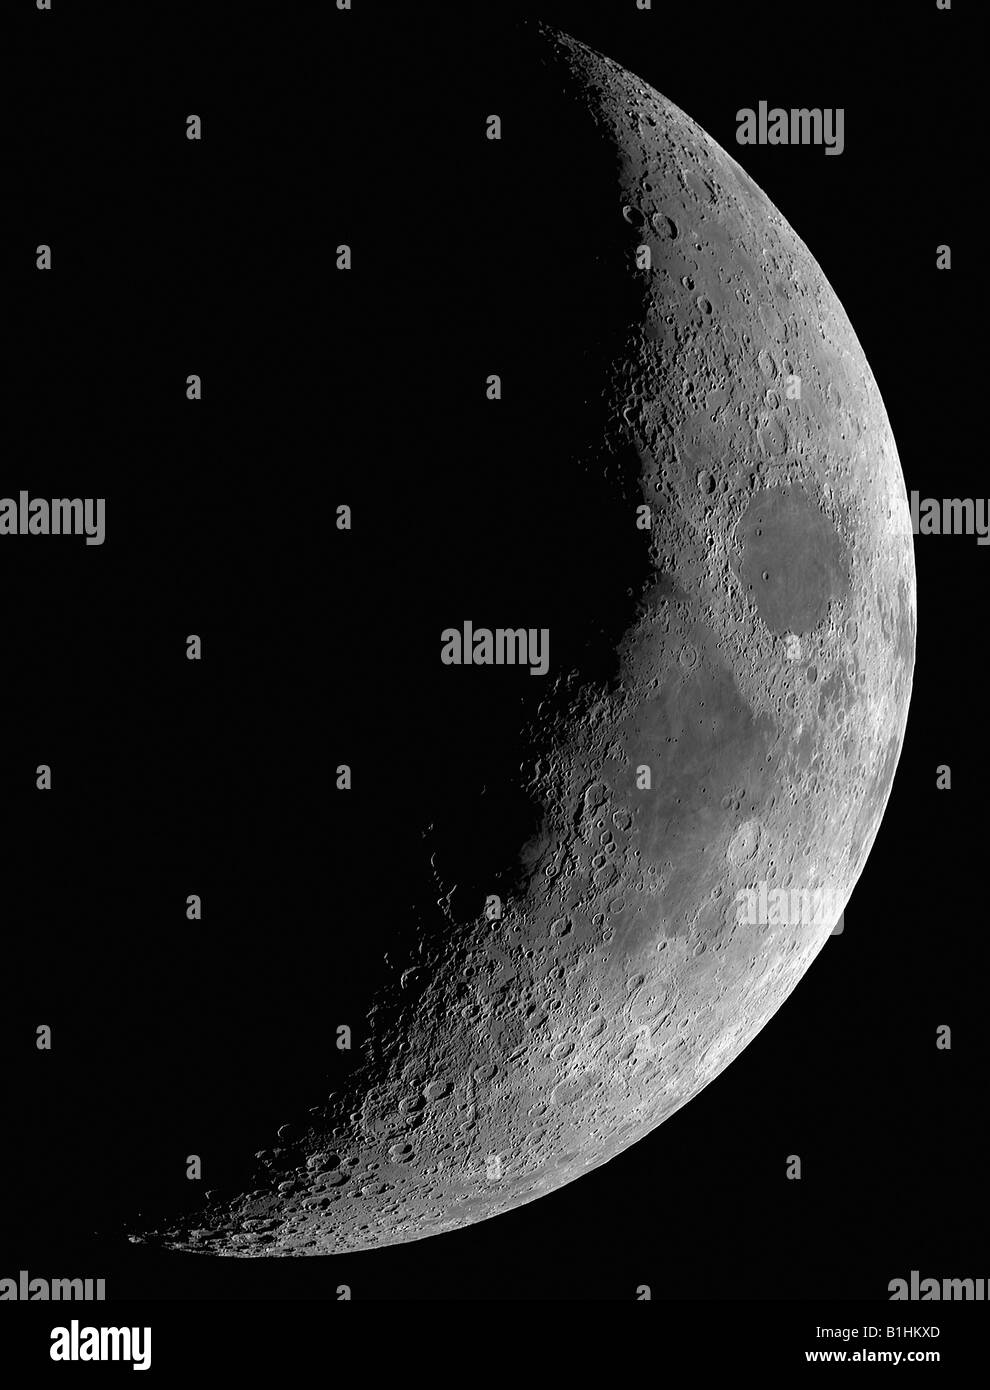 The Earth's Moon - Stock Image